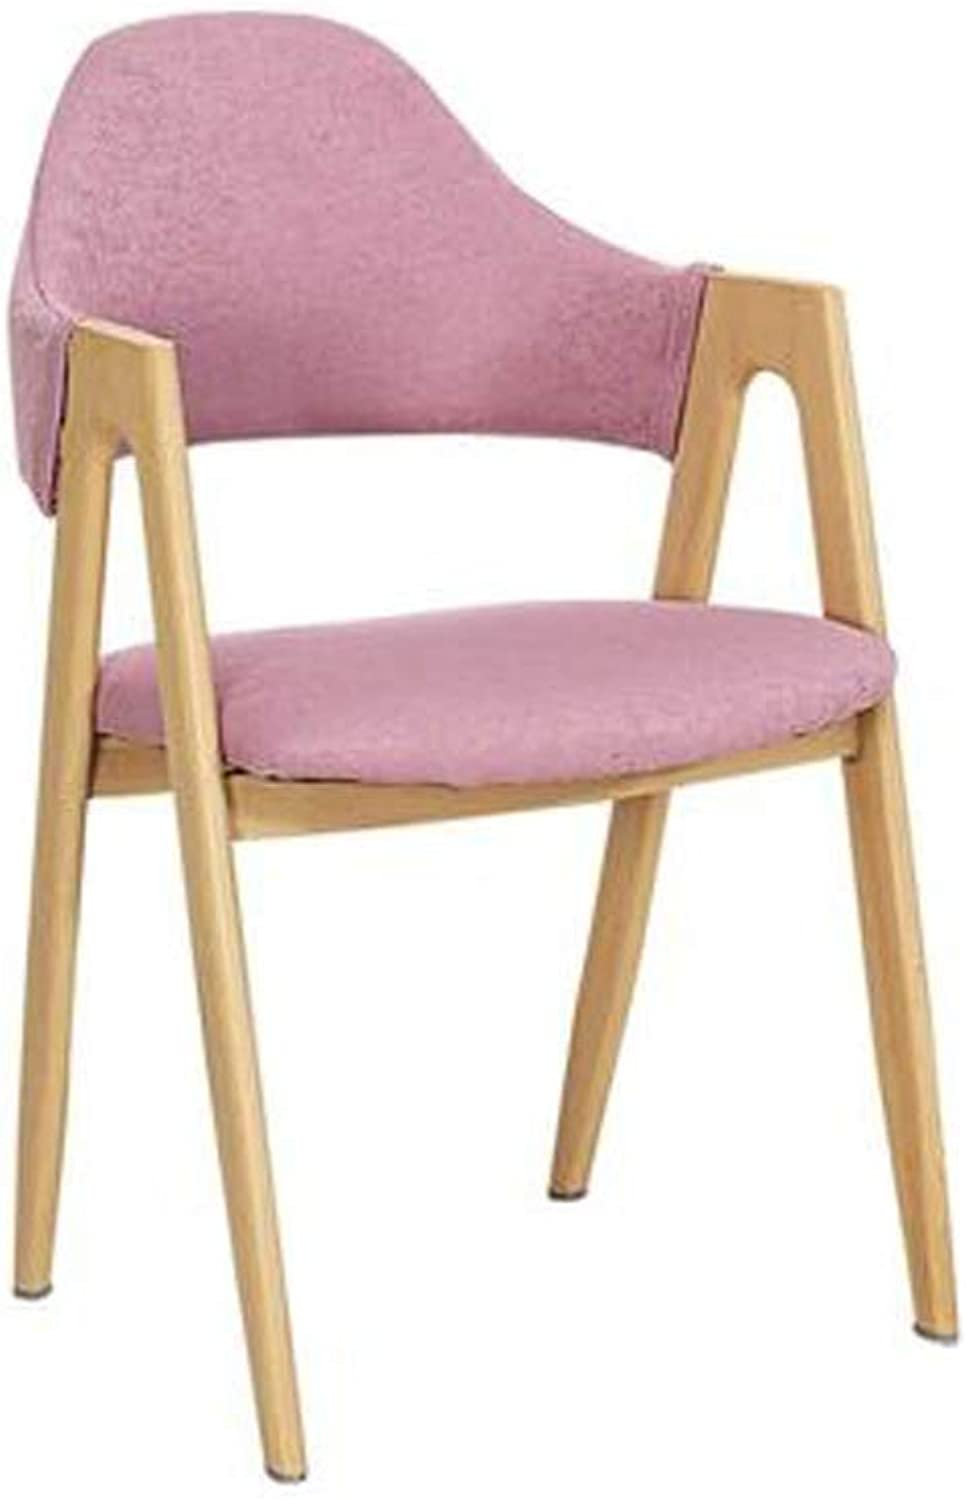 Barstool Nordic bar Chair Wrought Iron with backrest Linen Casual 4 colors 52  46  81cm (color   Pink)